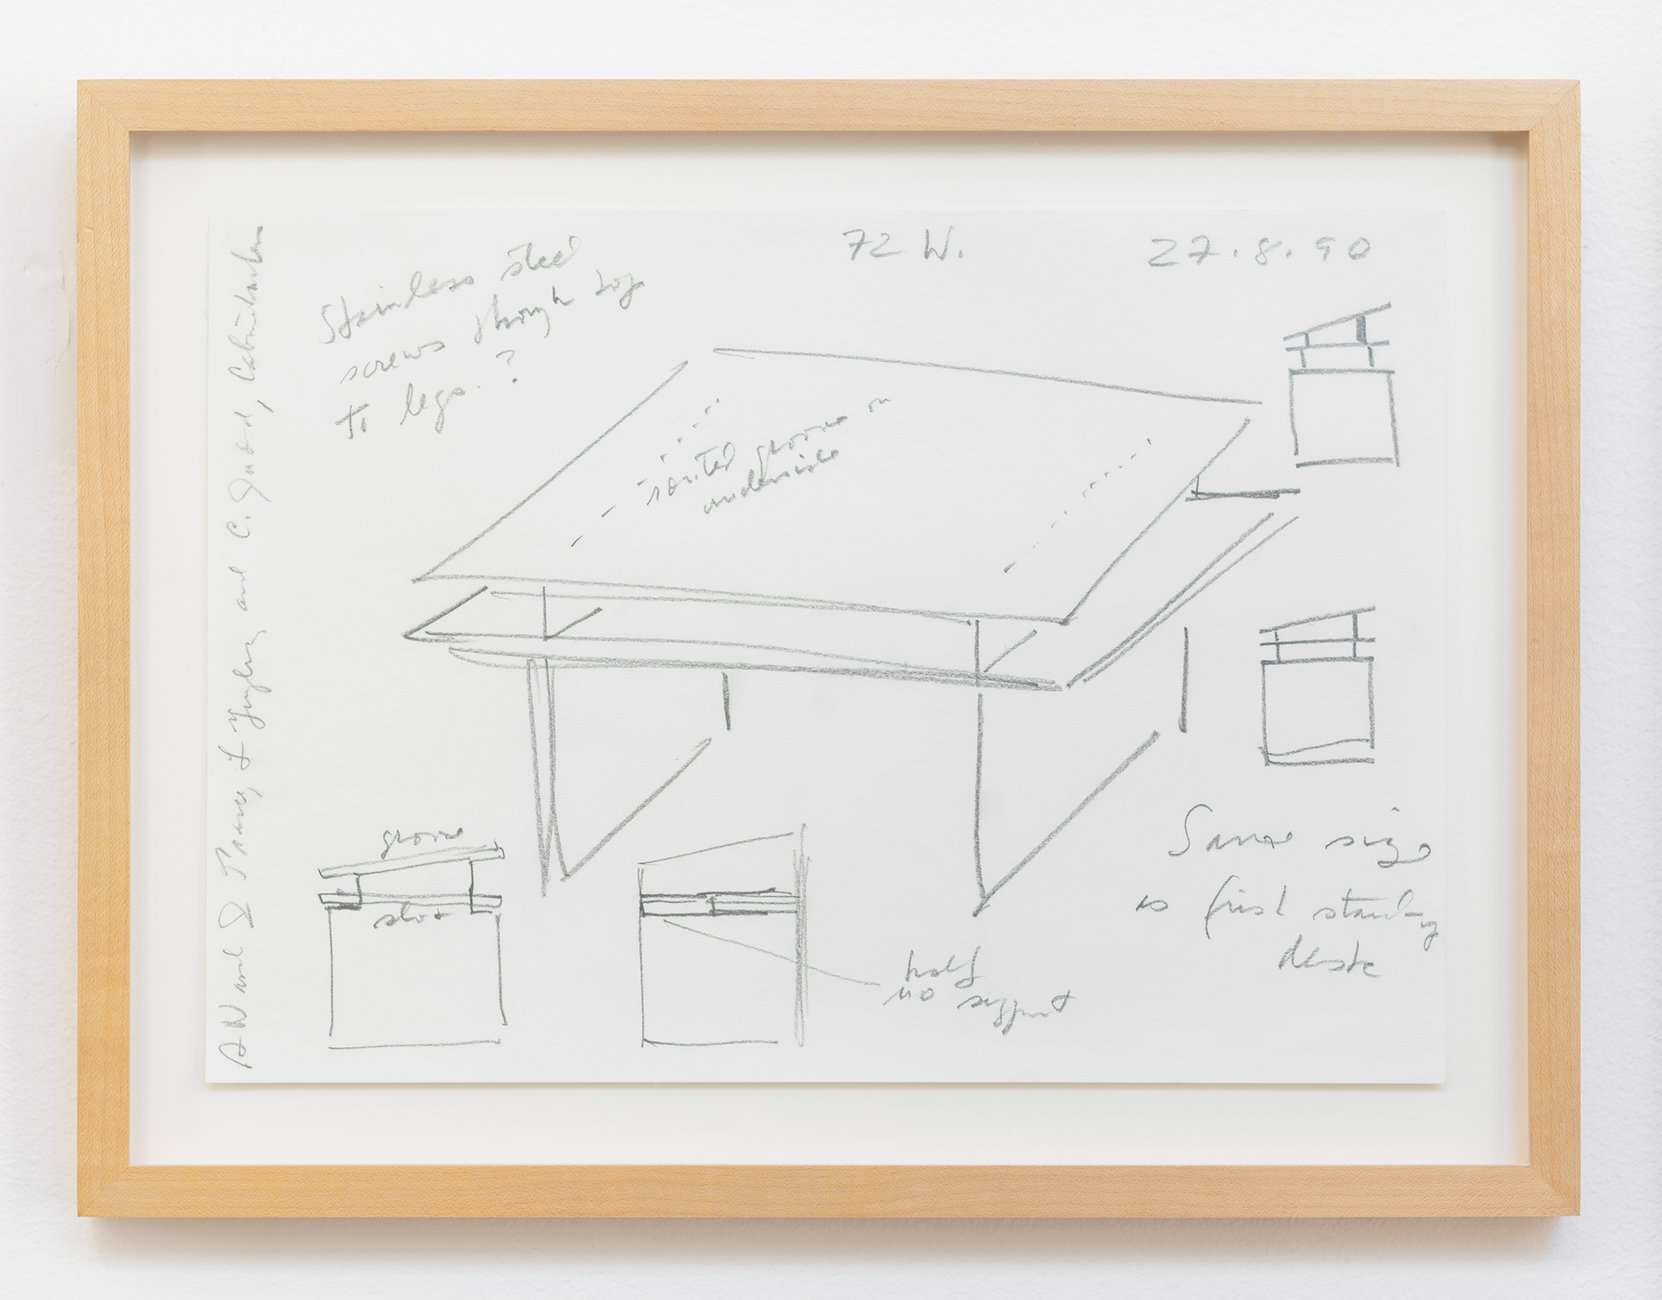 Donald Judd drawings for building a desk